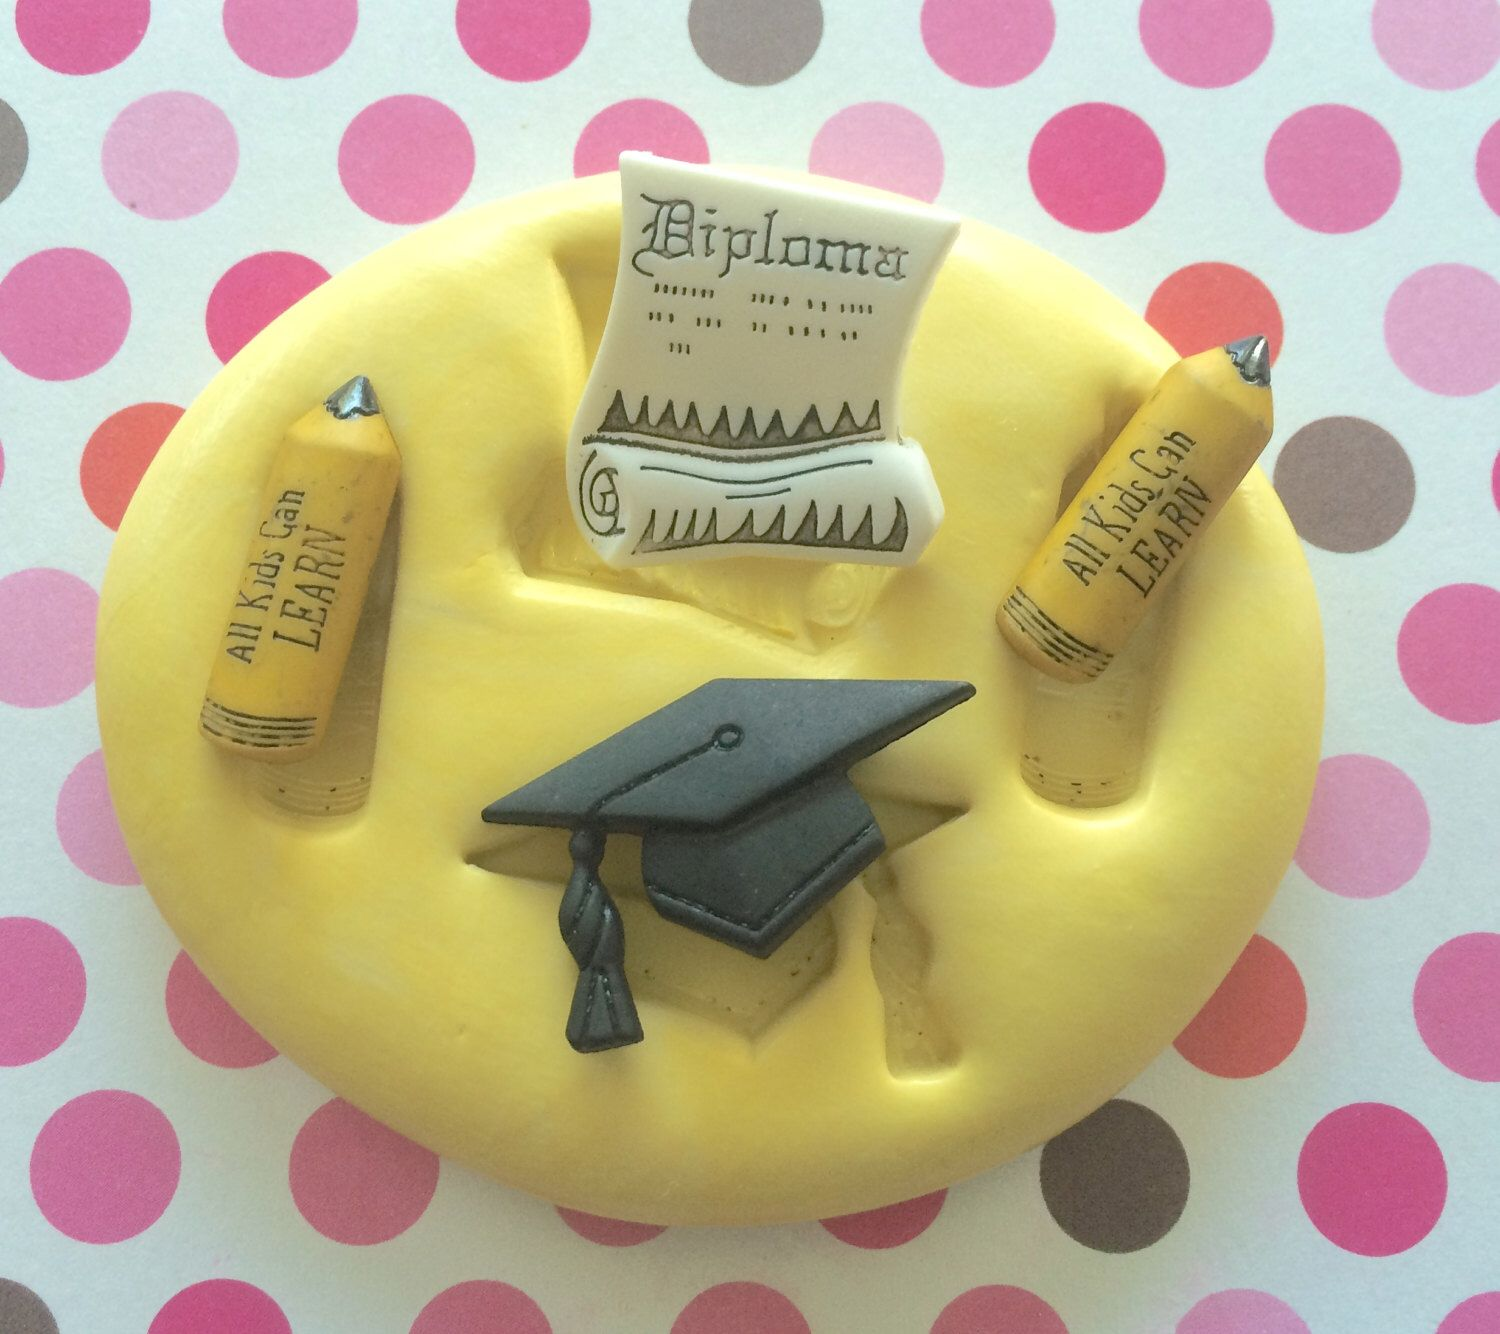 Graduation Hat Mold Diploma Pencil Silicone Mold Diploma Mold Fondant Mold Cupcake Topper Cake Supply Craft Hat Mold School Mold Fondant Molds Friend Craft Silicone Molds